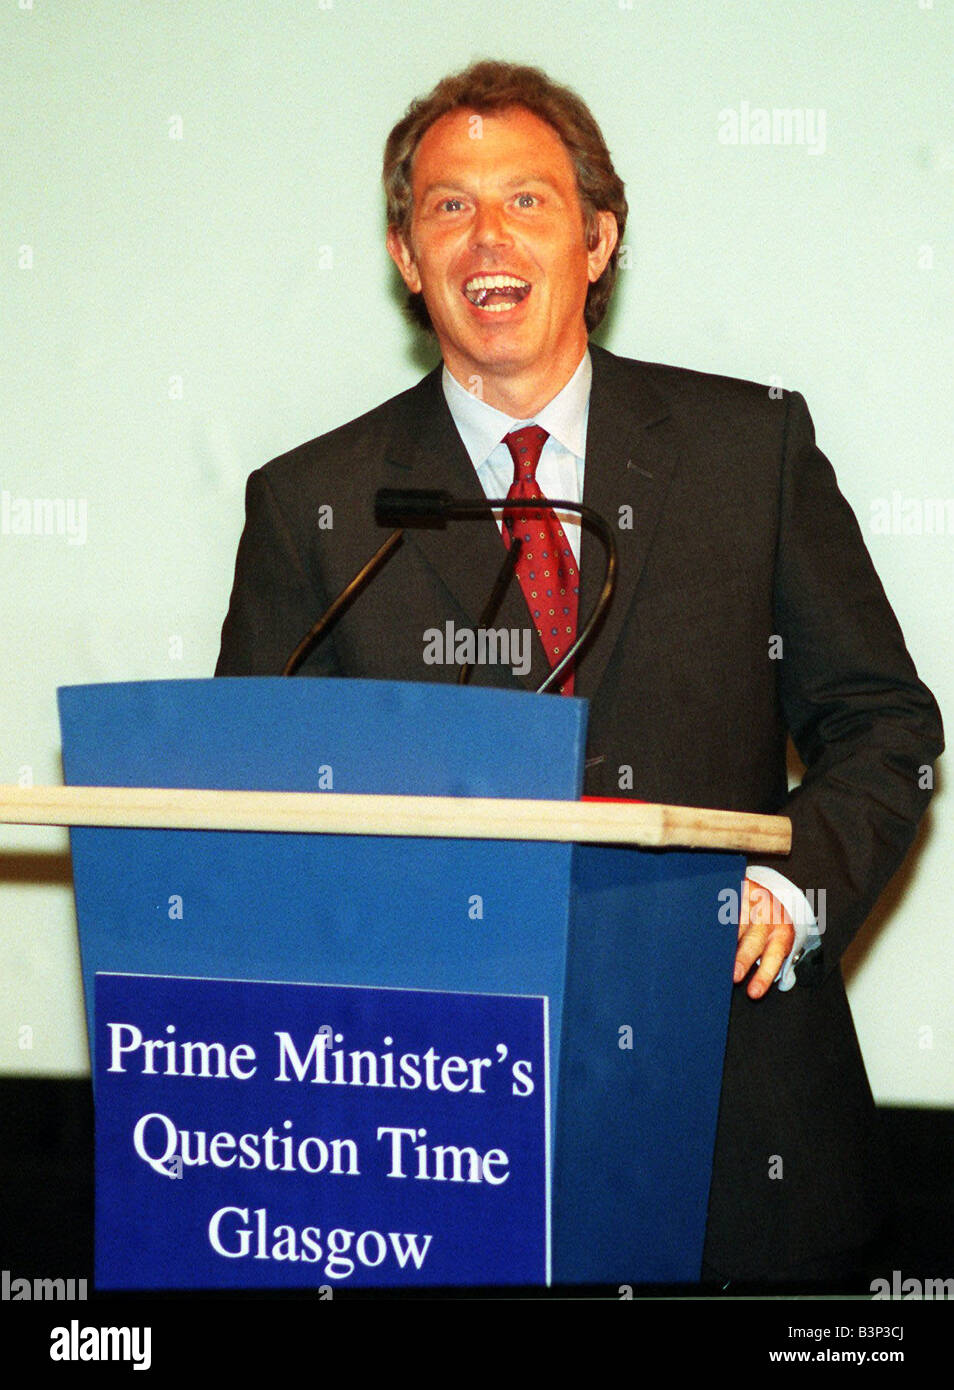 Tony Blair Prime Minister August 1998 at lectern Prime Minsters Question Time Glasgow - Stock Image